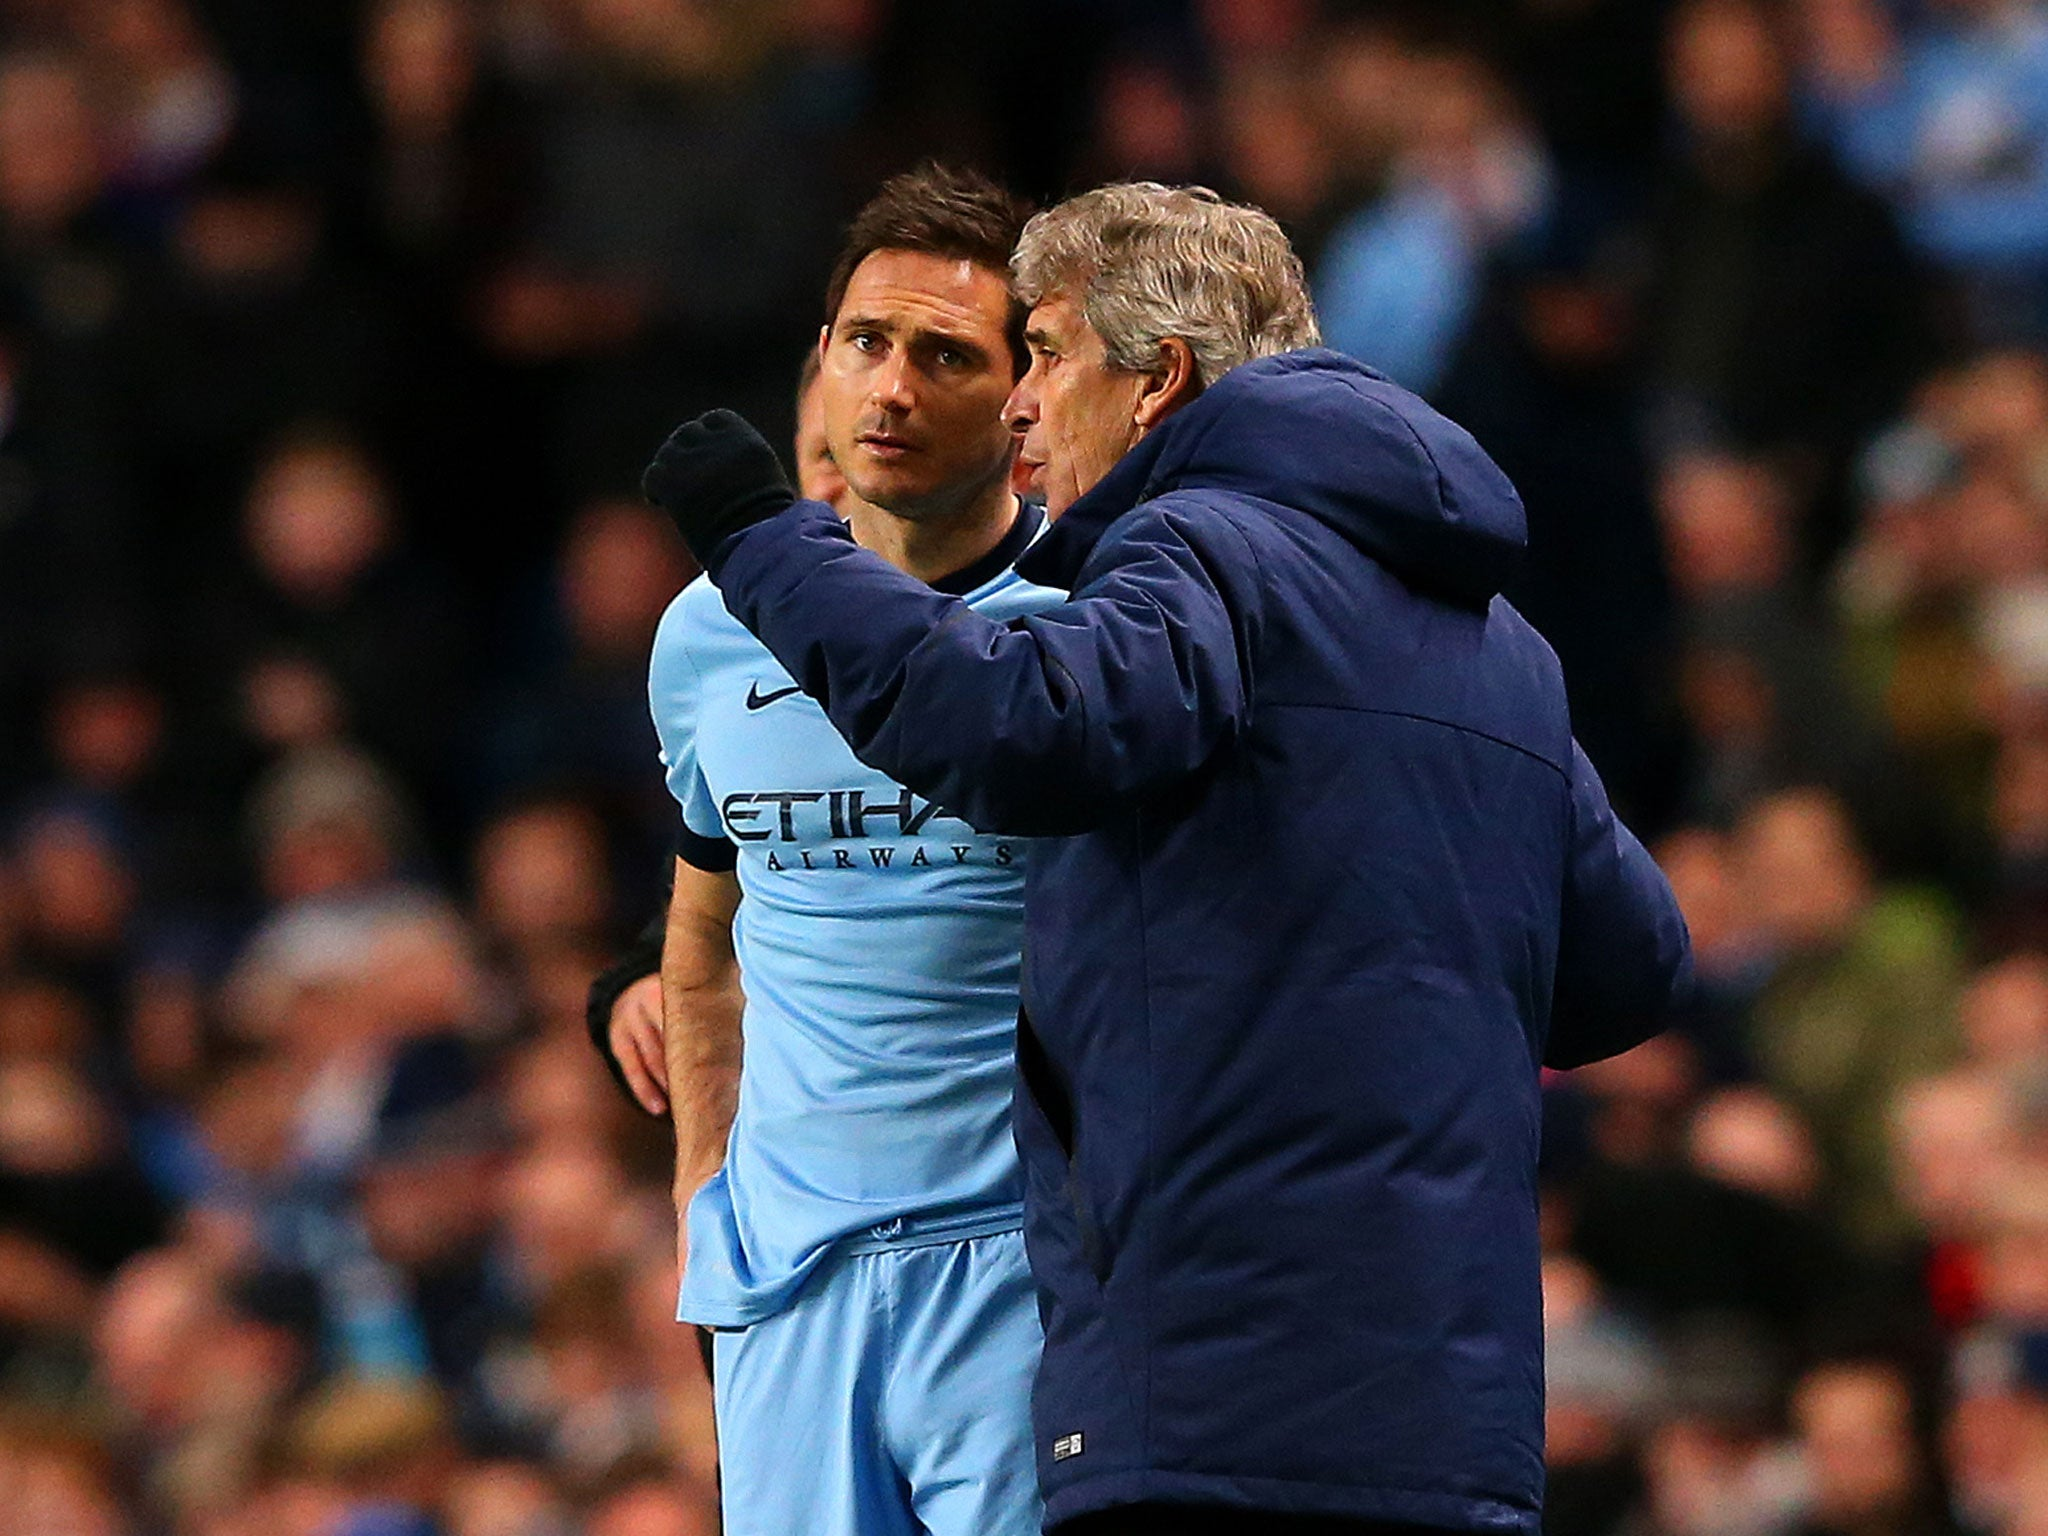 Frank Lampard unhappy at damage to his reputation after Manchester